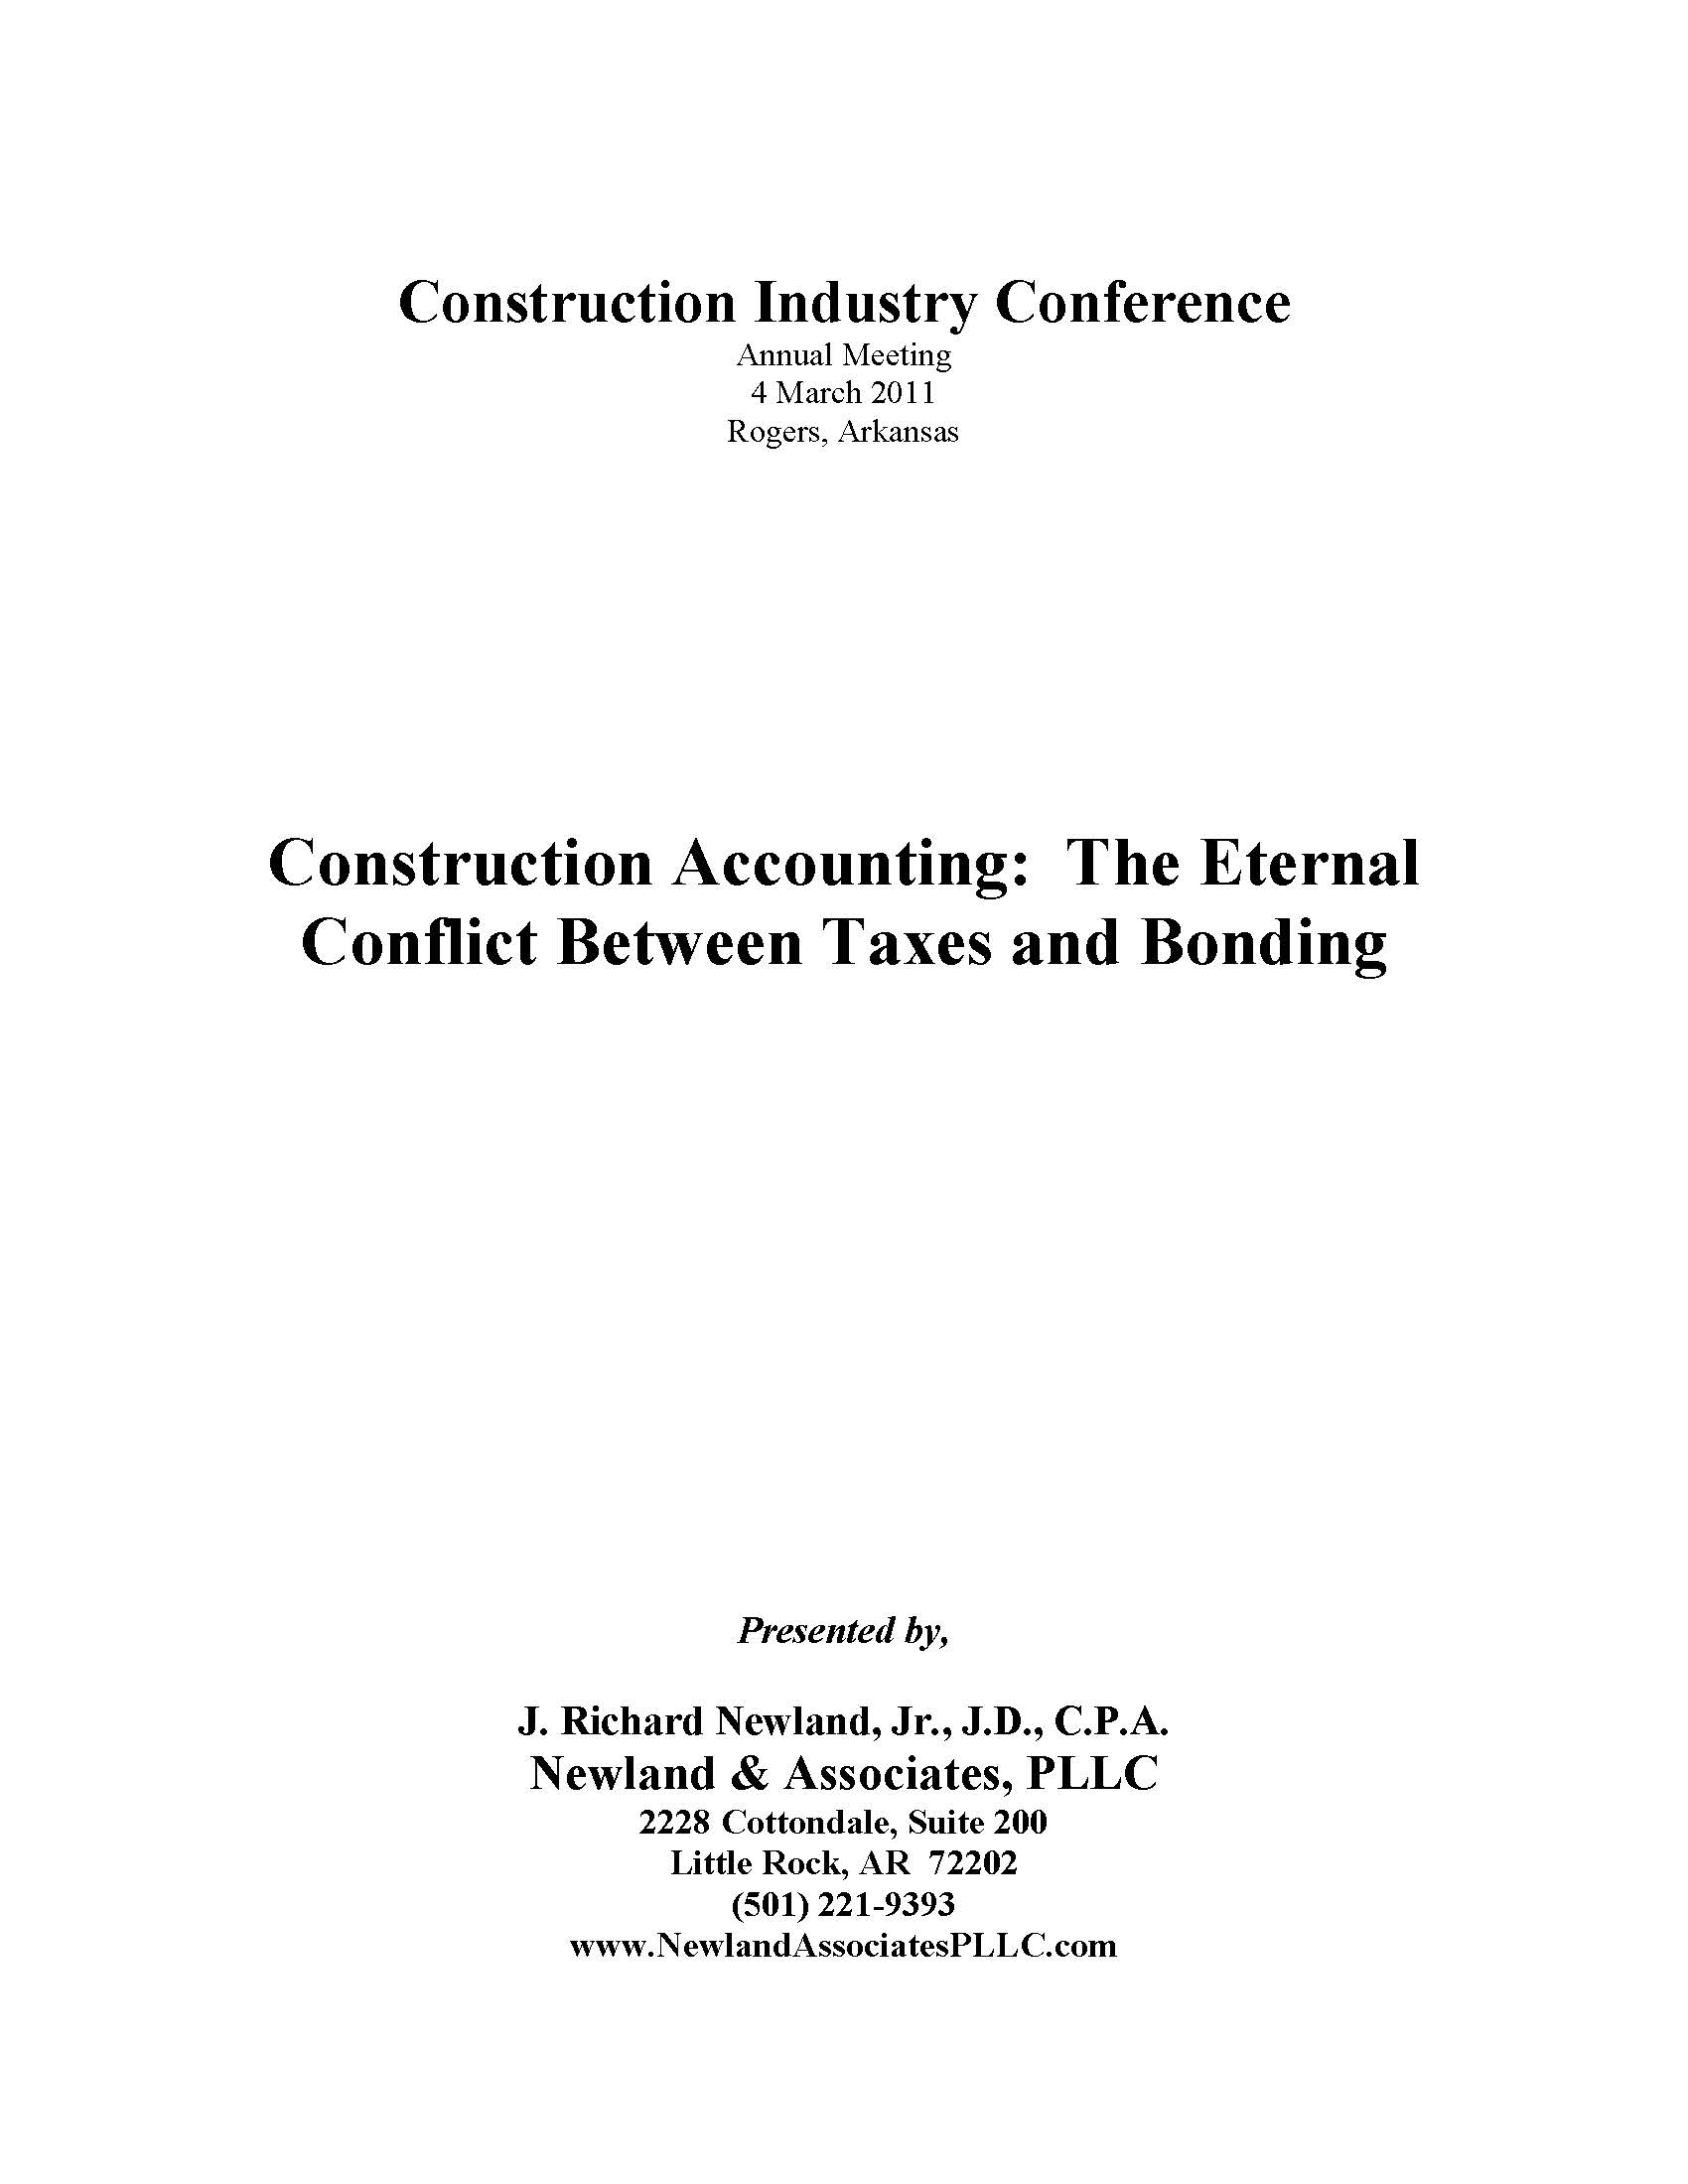 const-conf-construction-accounting_Page_01.jpg